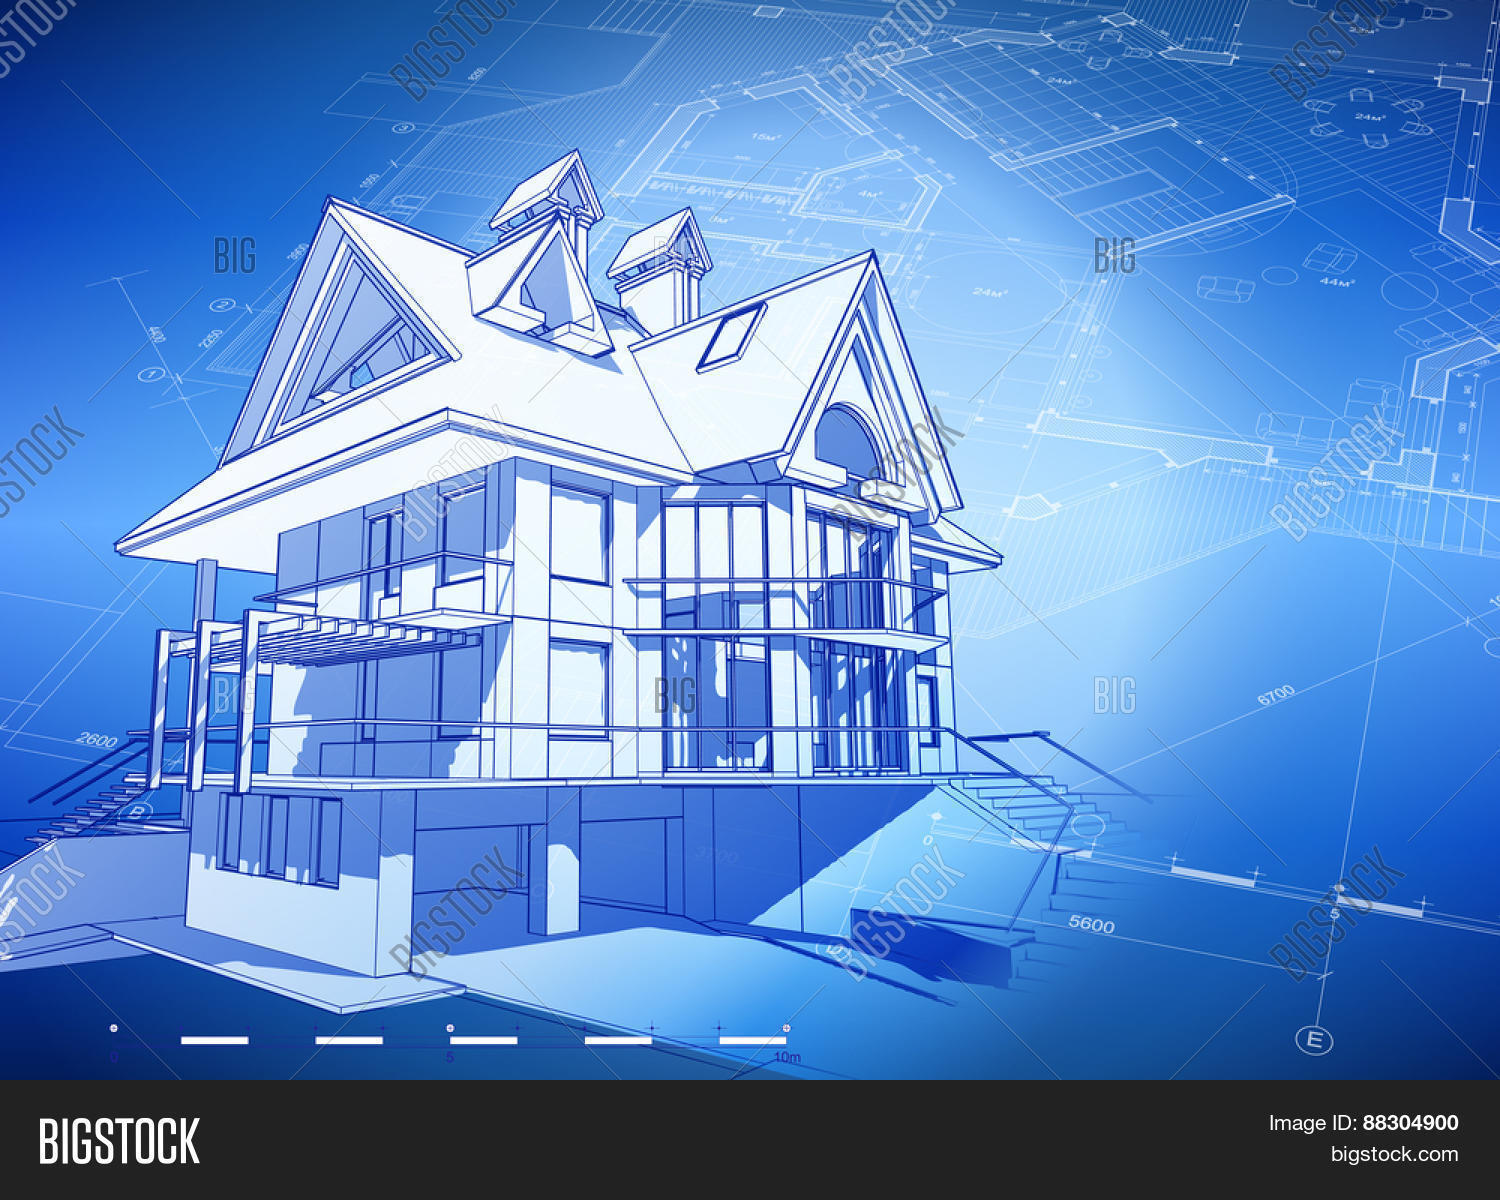 Architecture Design Blueprint 3d House Plan Blue